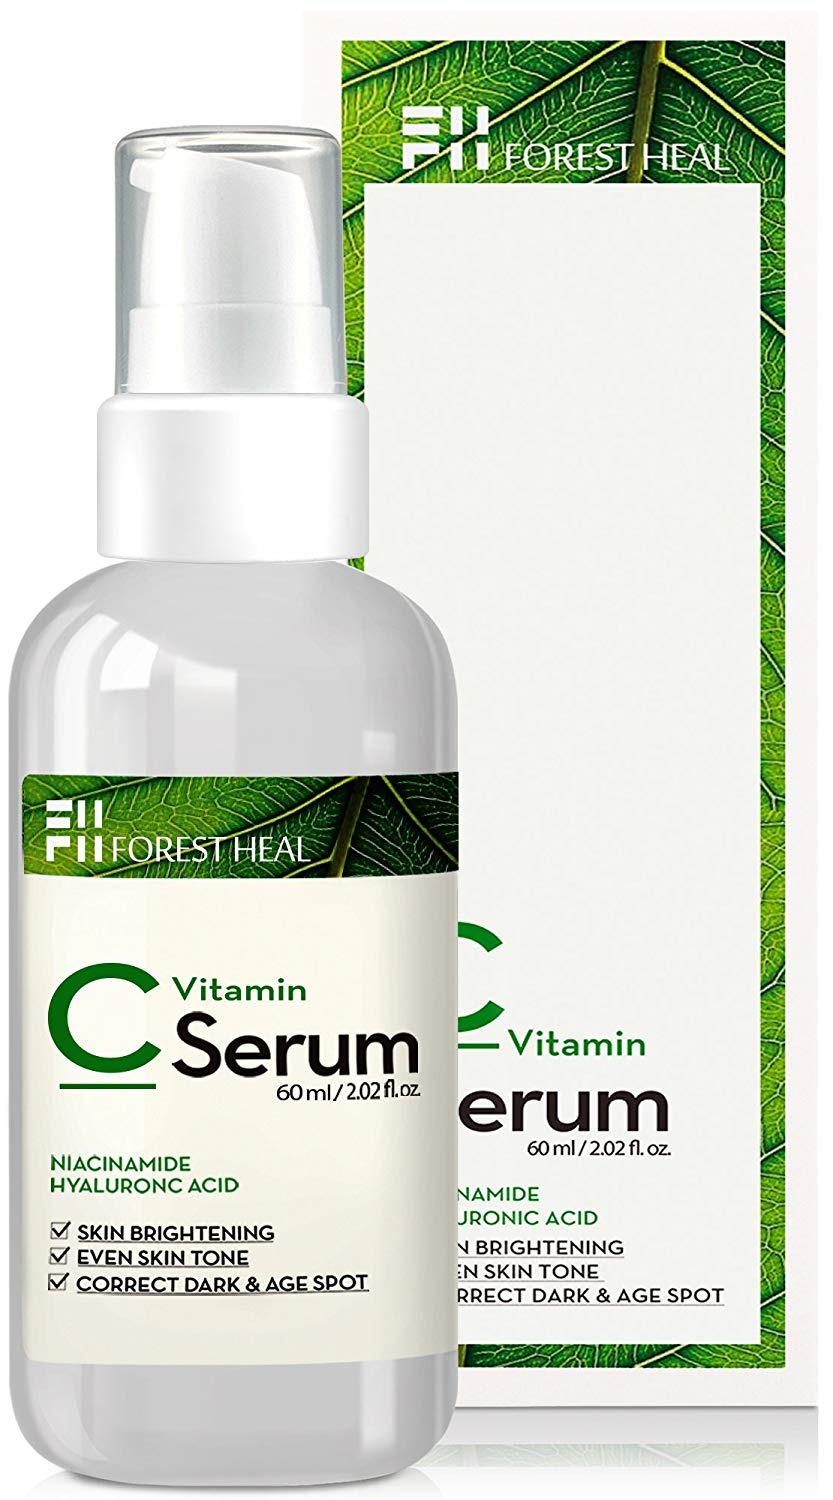 top beauty skin care products purchased spy readers 2018 vitamin c serum forest heal face